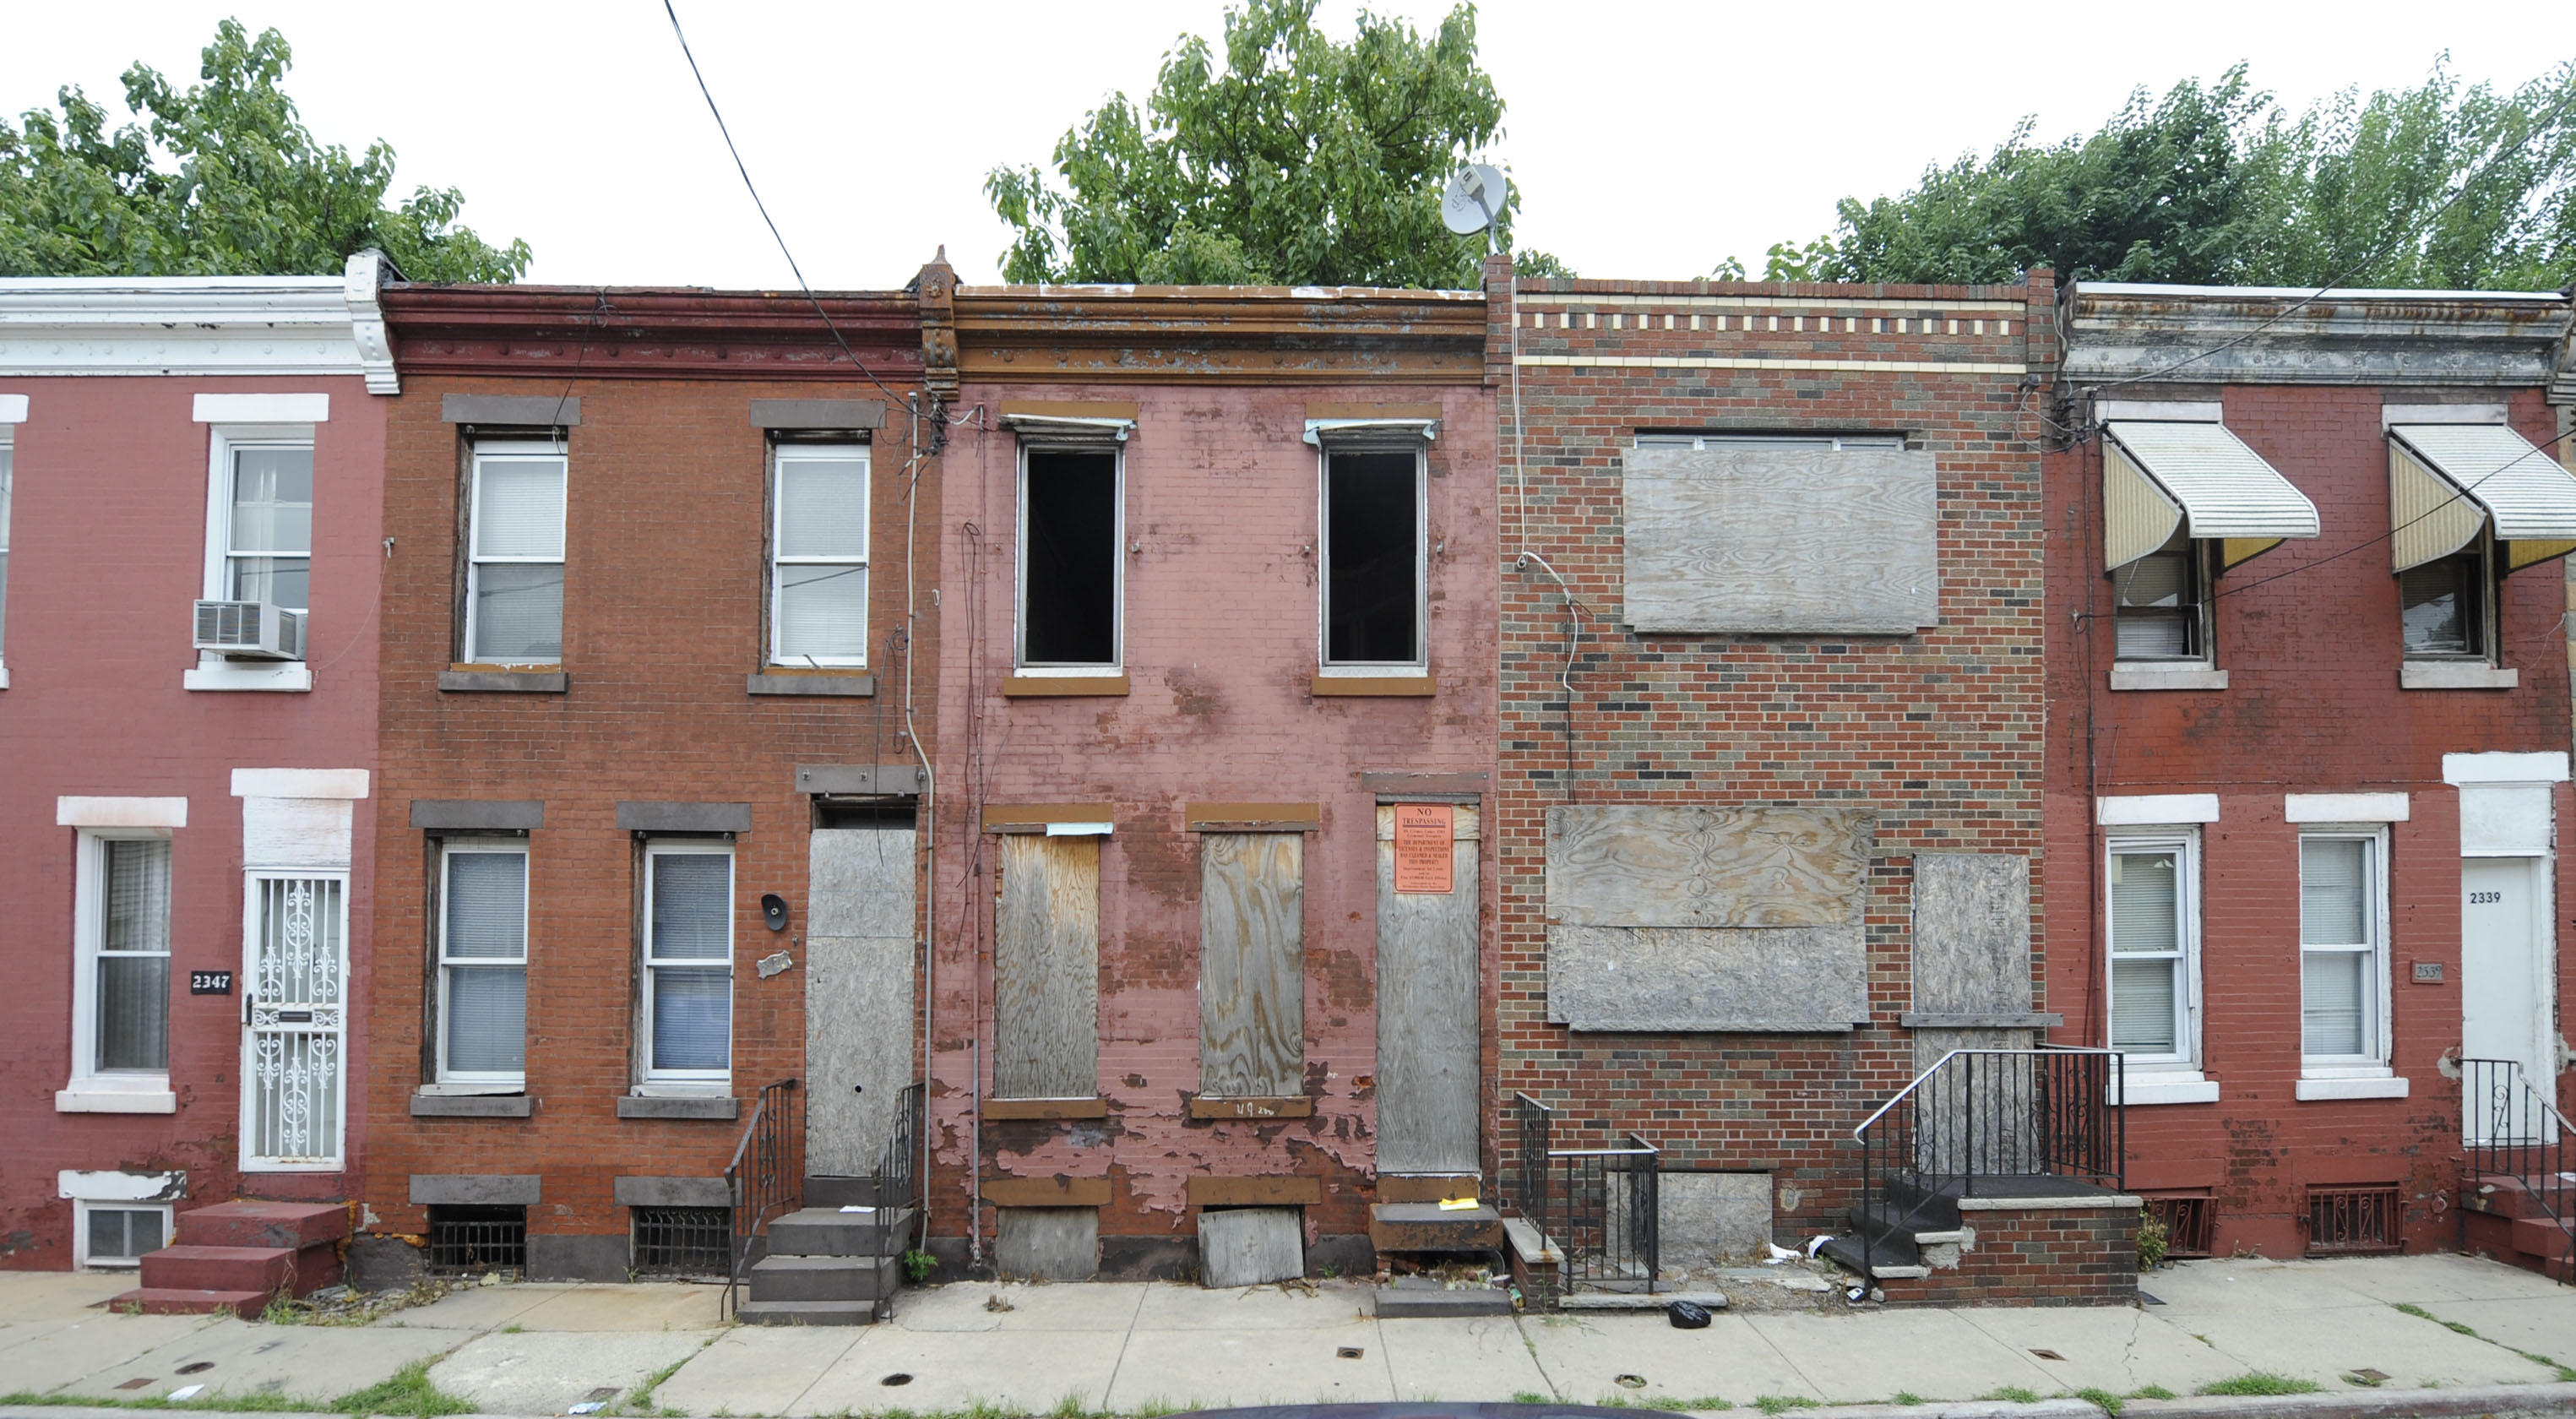 Abandoned tax delinquent property on the 2300 block of Gerrit Street in Point Breeze (Clem Murray / Inquirer)